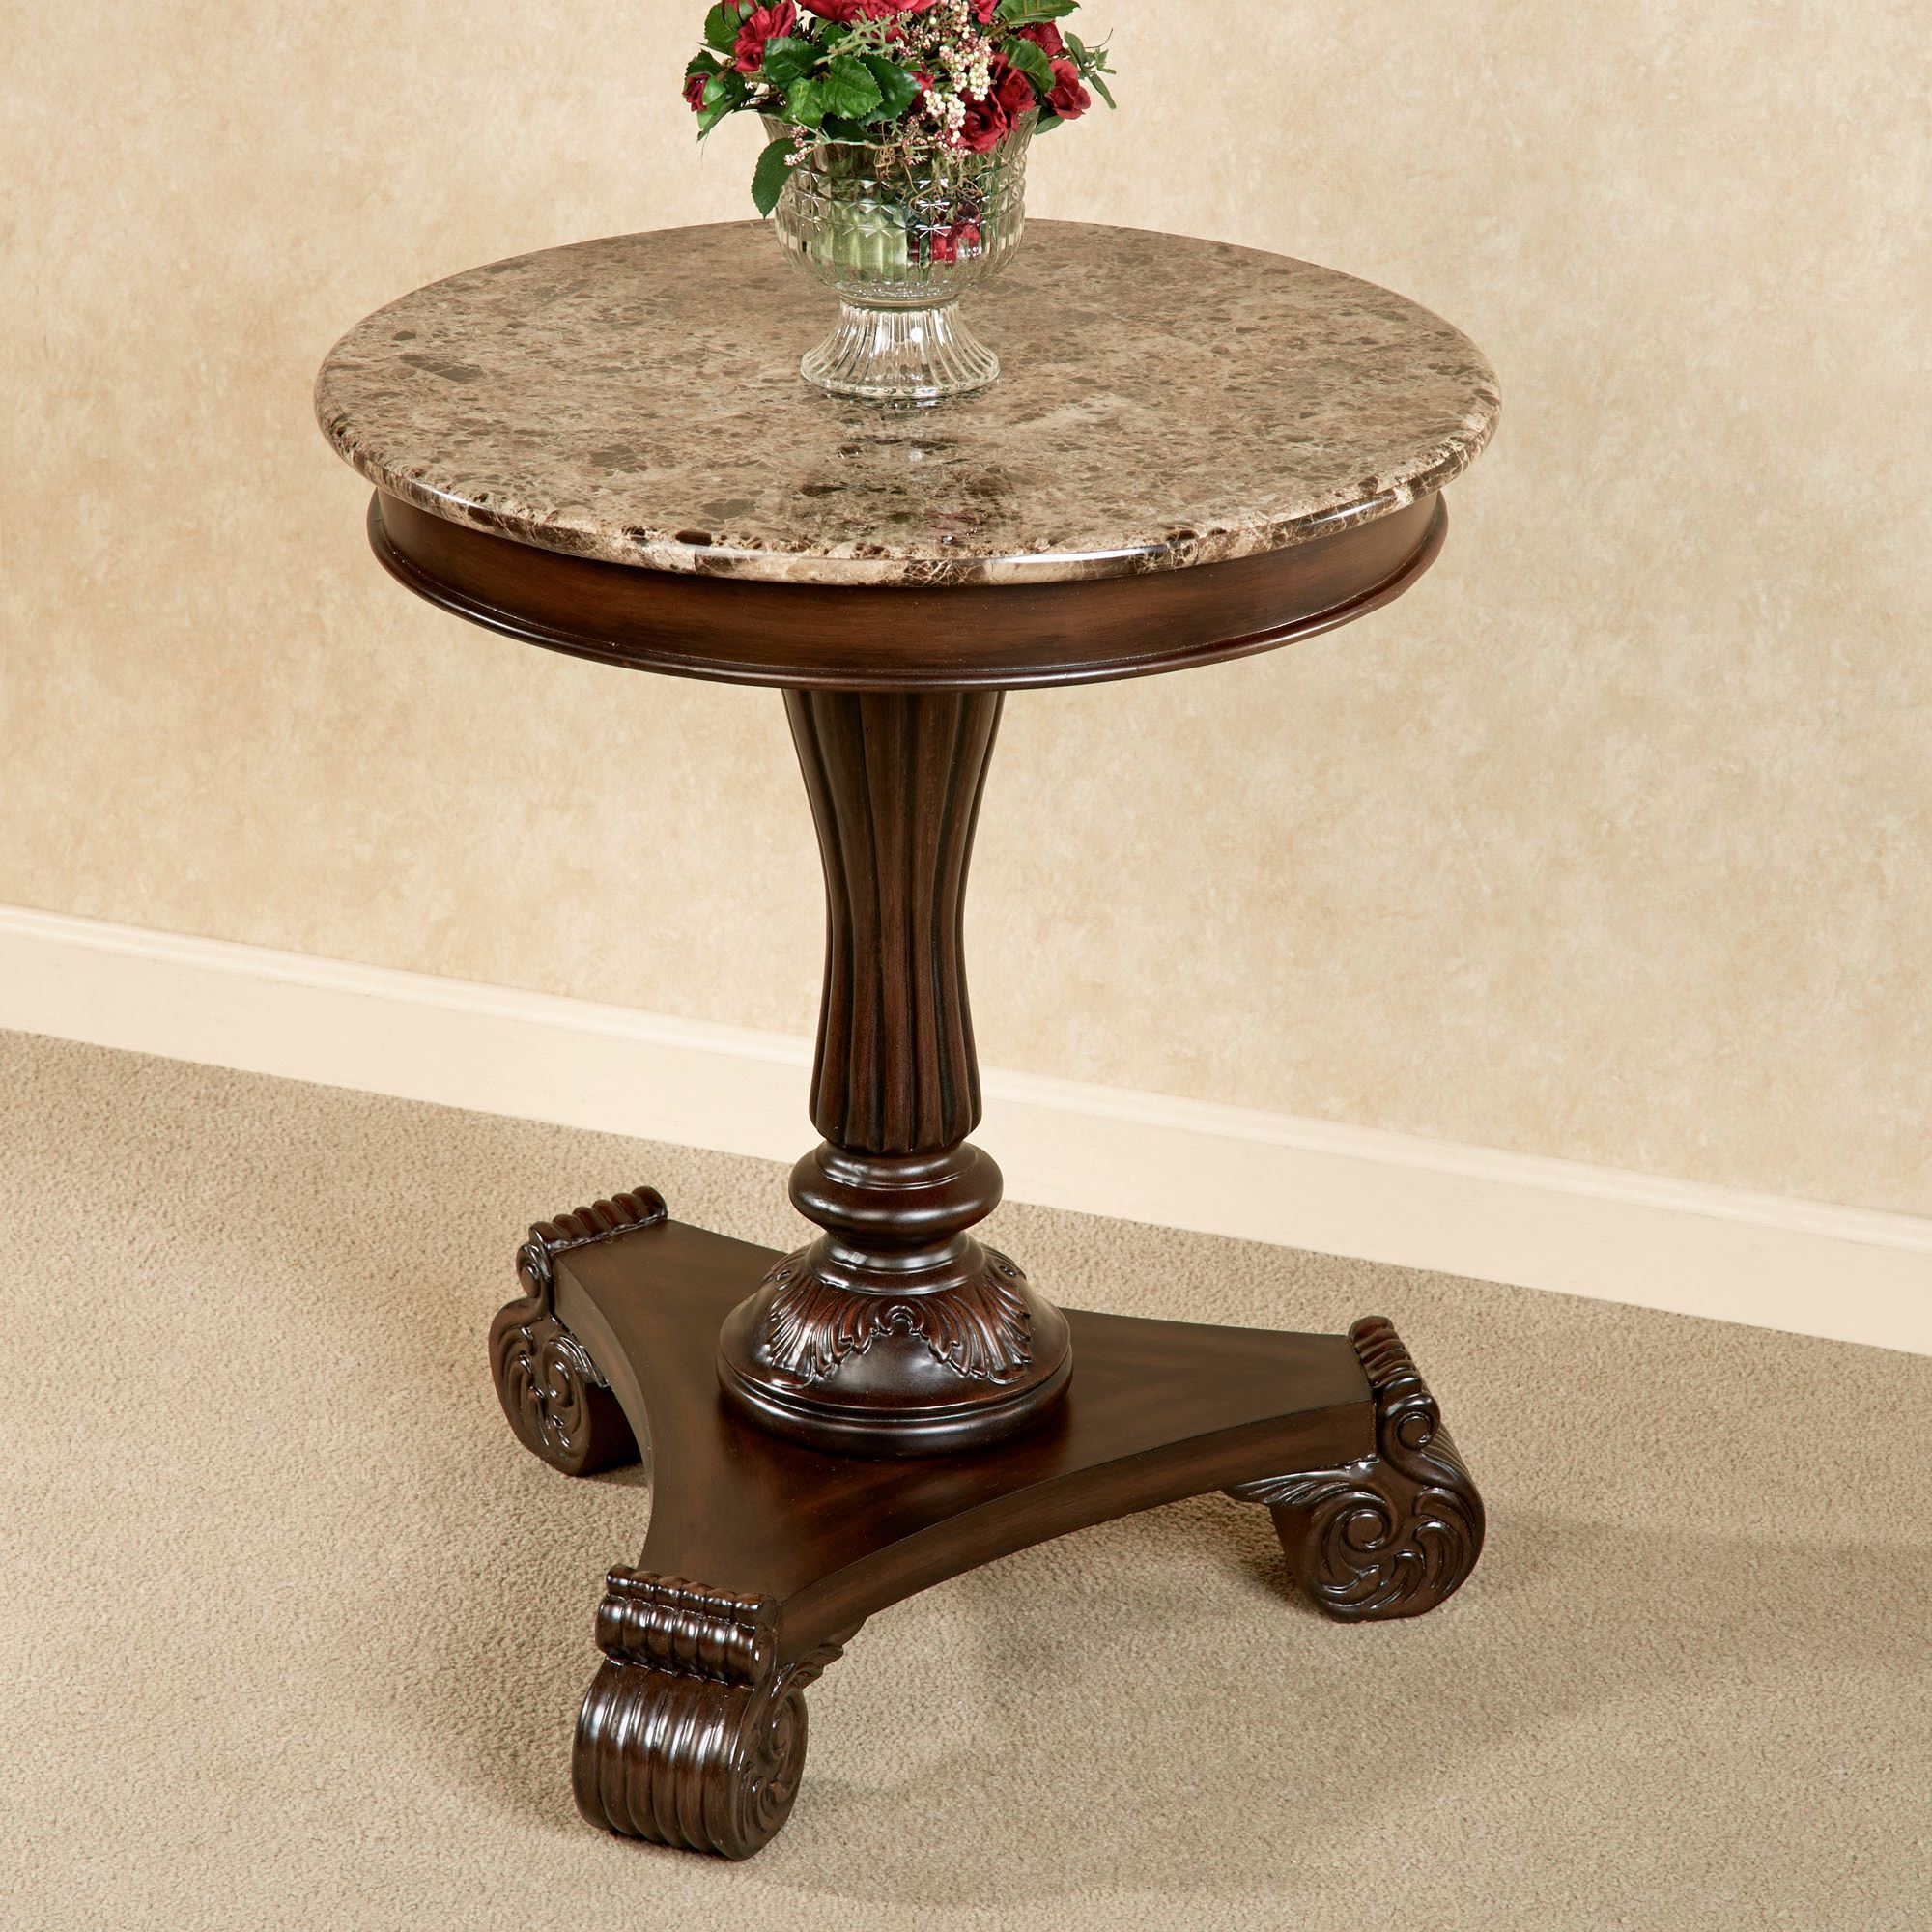 killian marble top round accent table autumn cherry touch zoom black bar height brielle furniture cute tables espresso colored end navy side fretwork coffee utility nesting